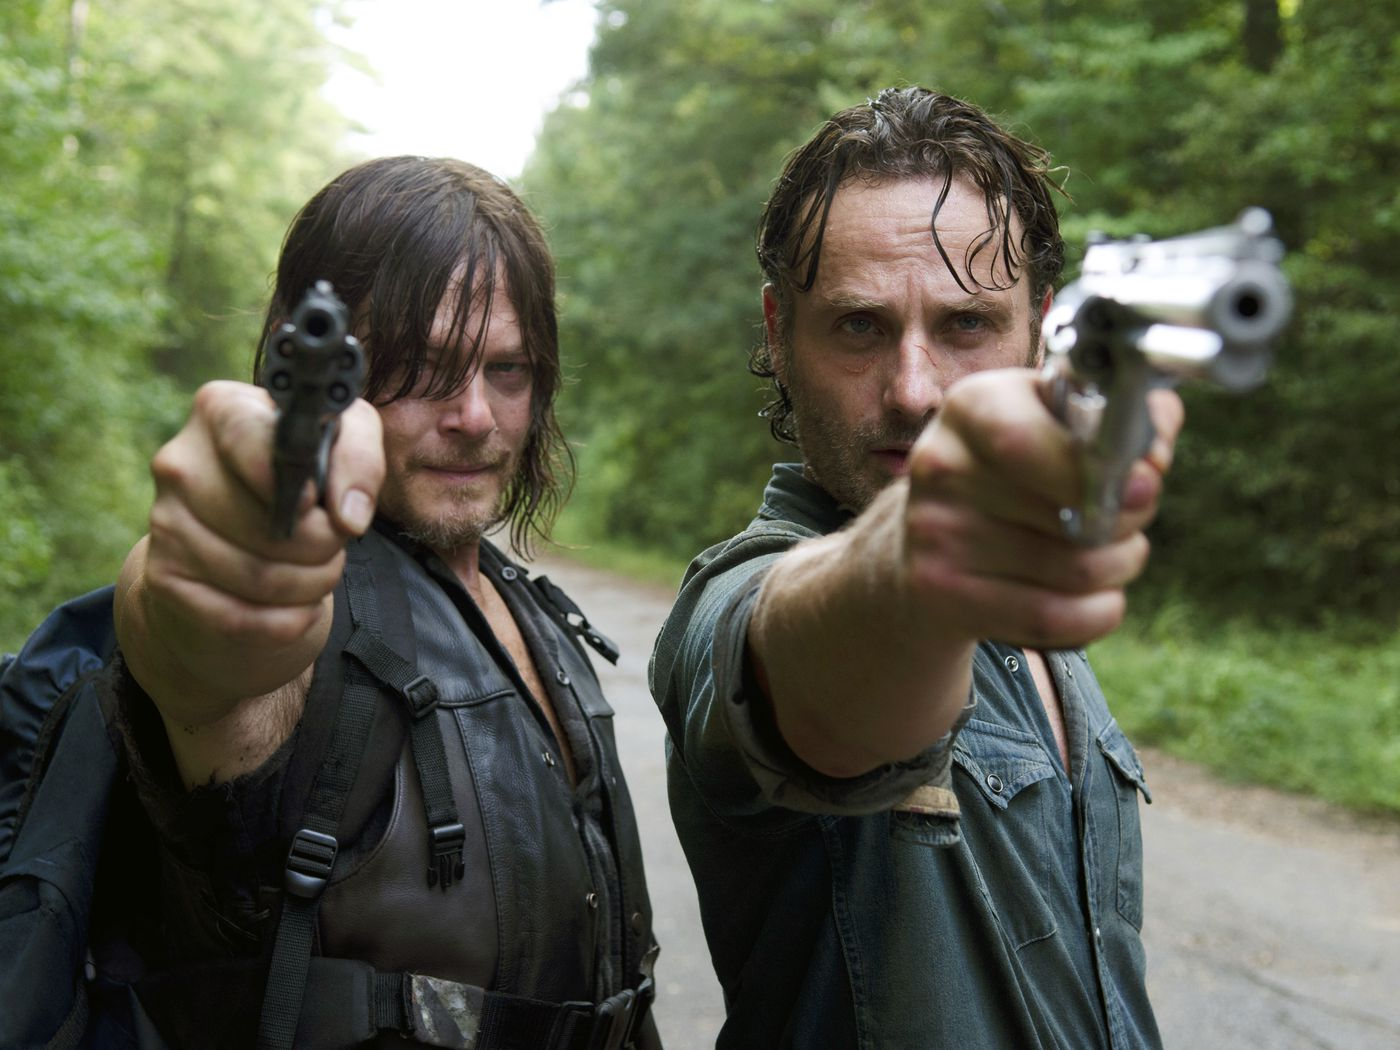 The Walking Dead Season 6 Episode 10 Love Is In The Air For Rick